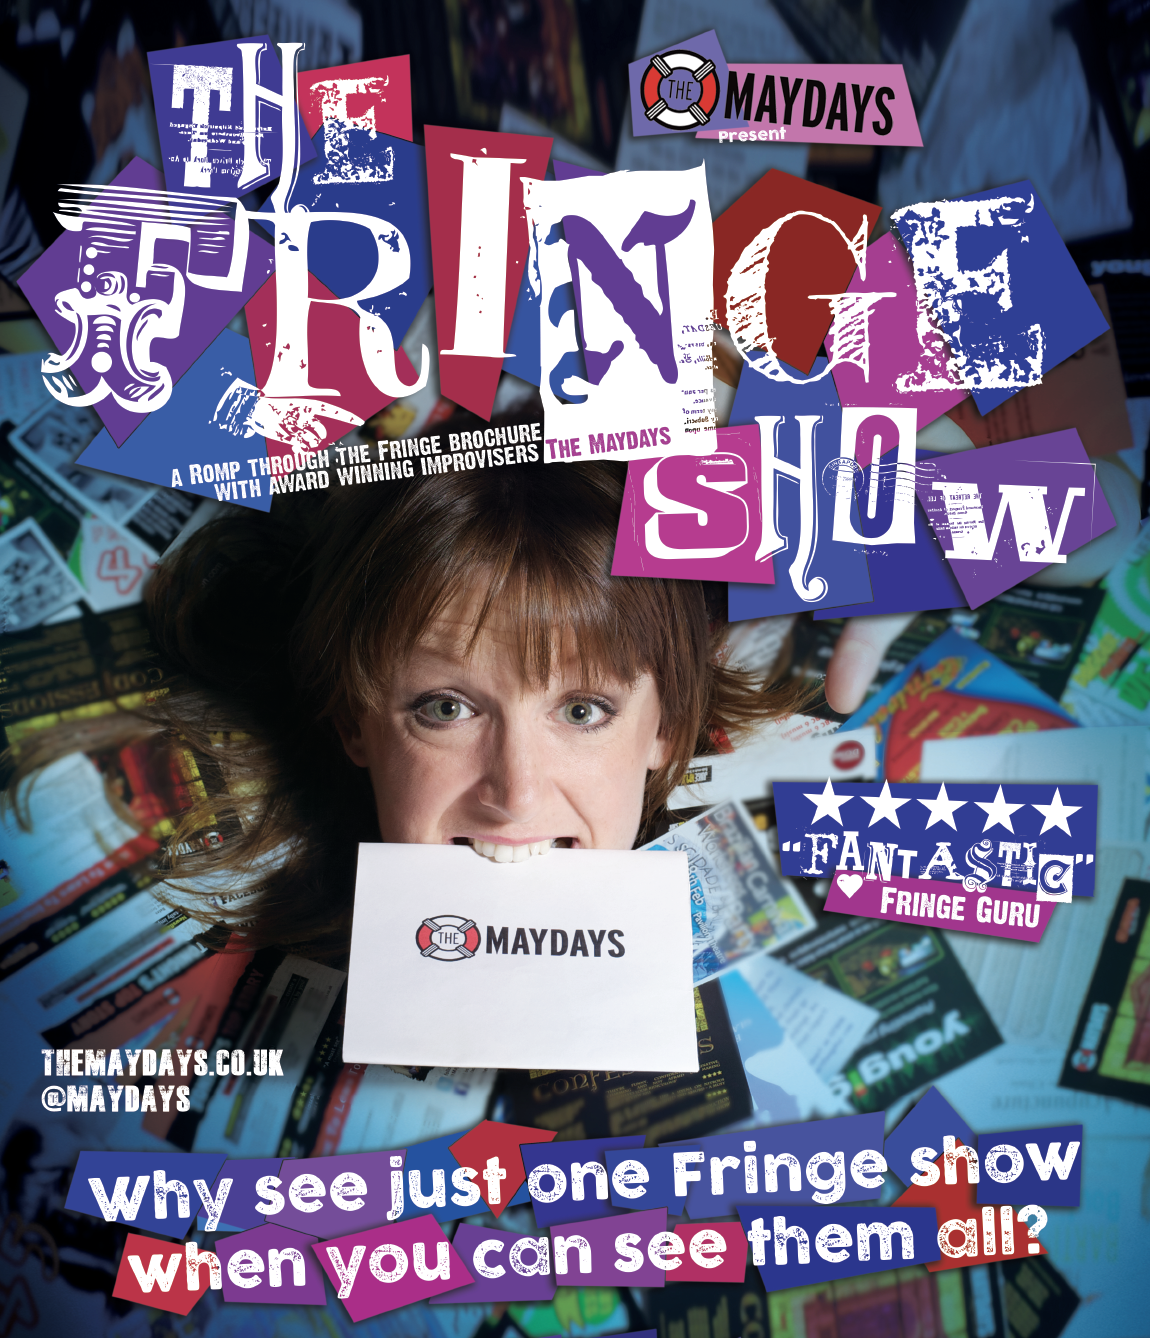 The Maydays present: The Fringe Show